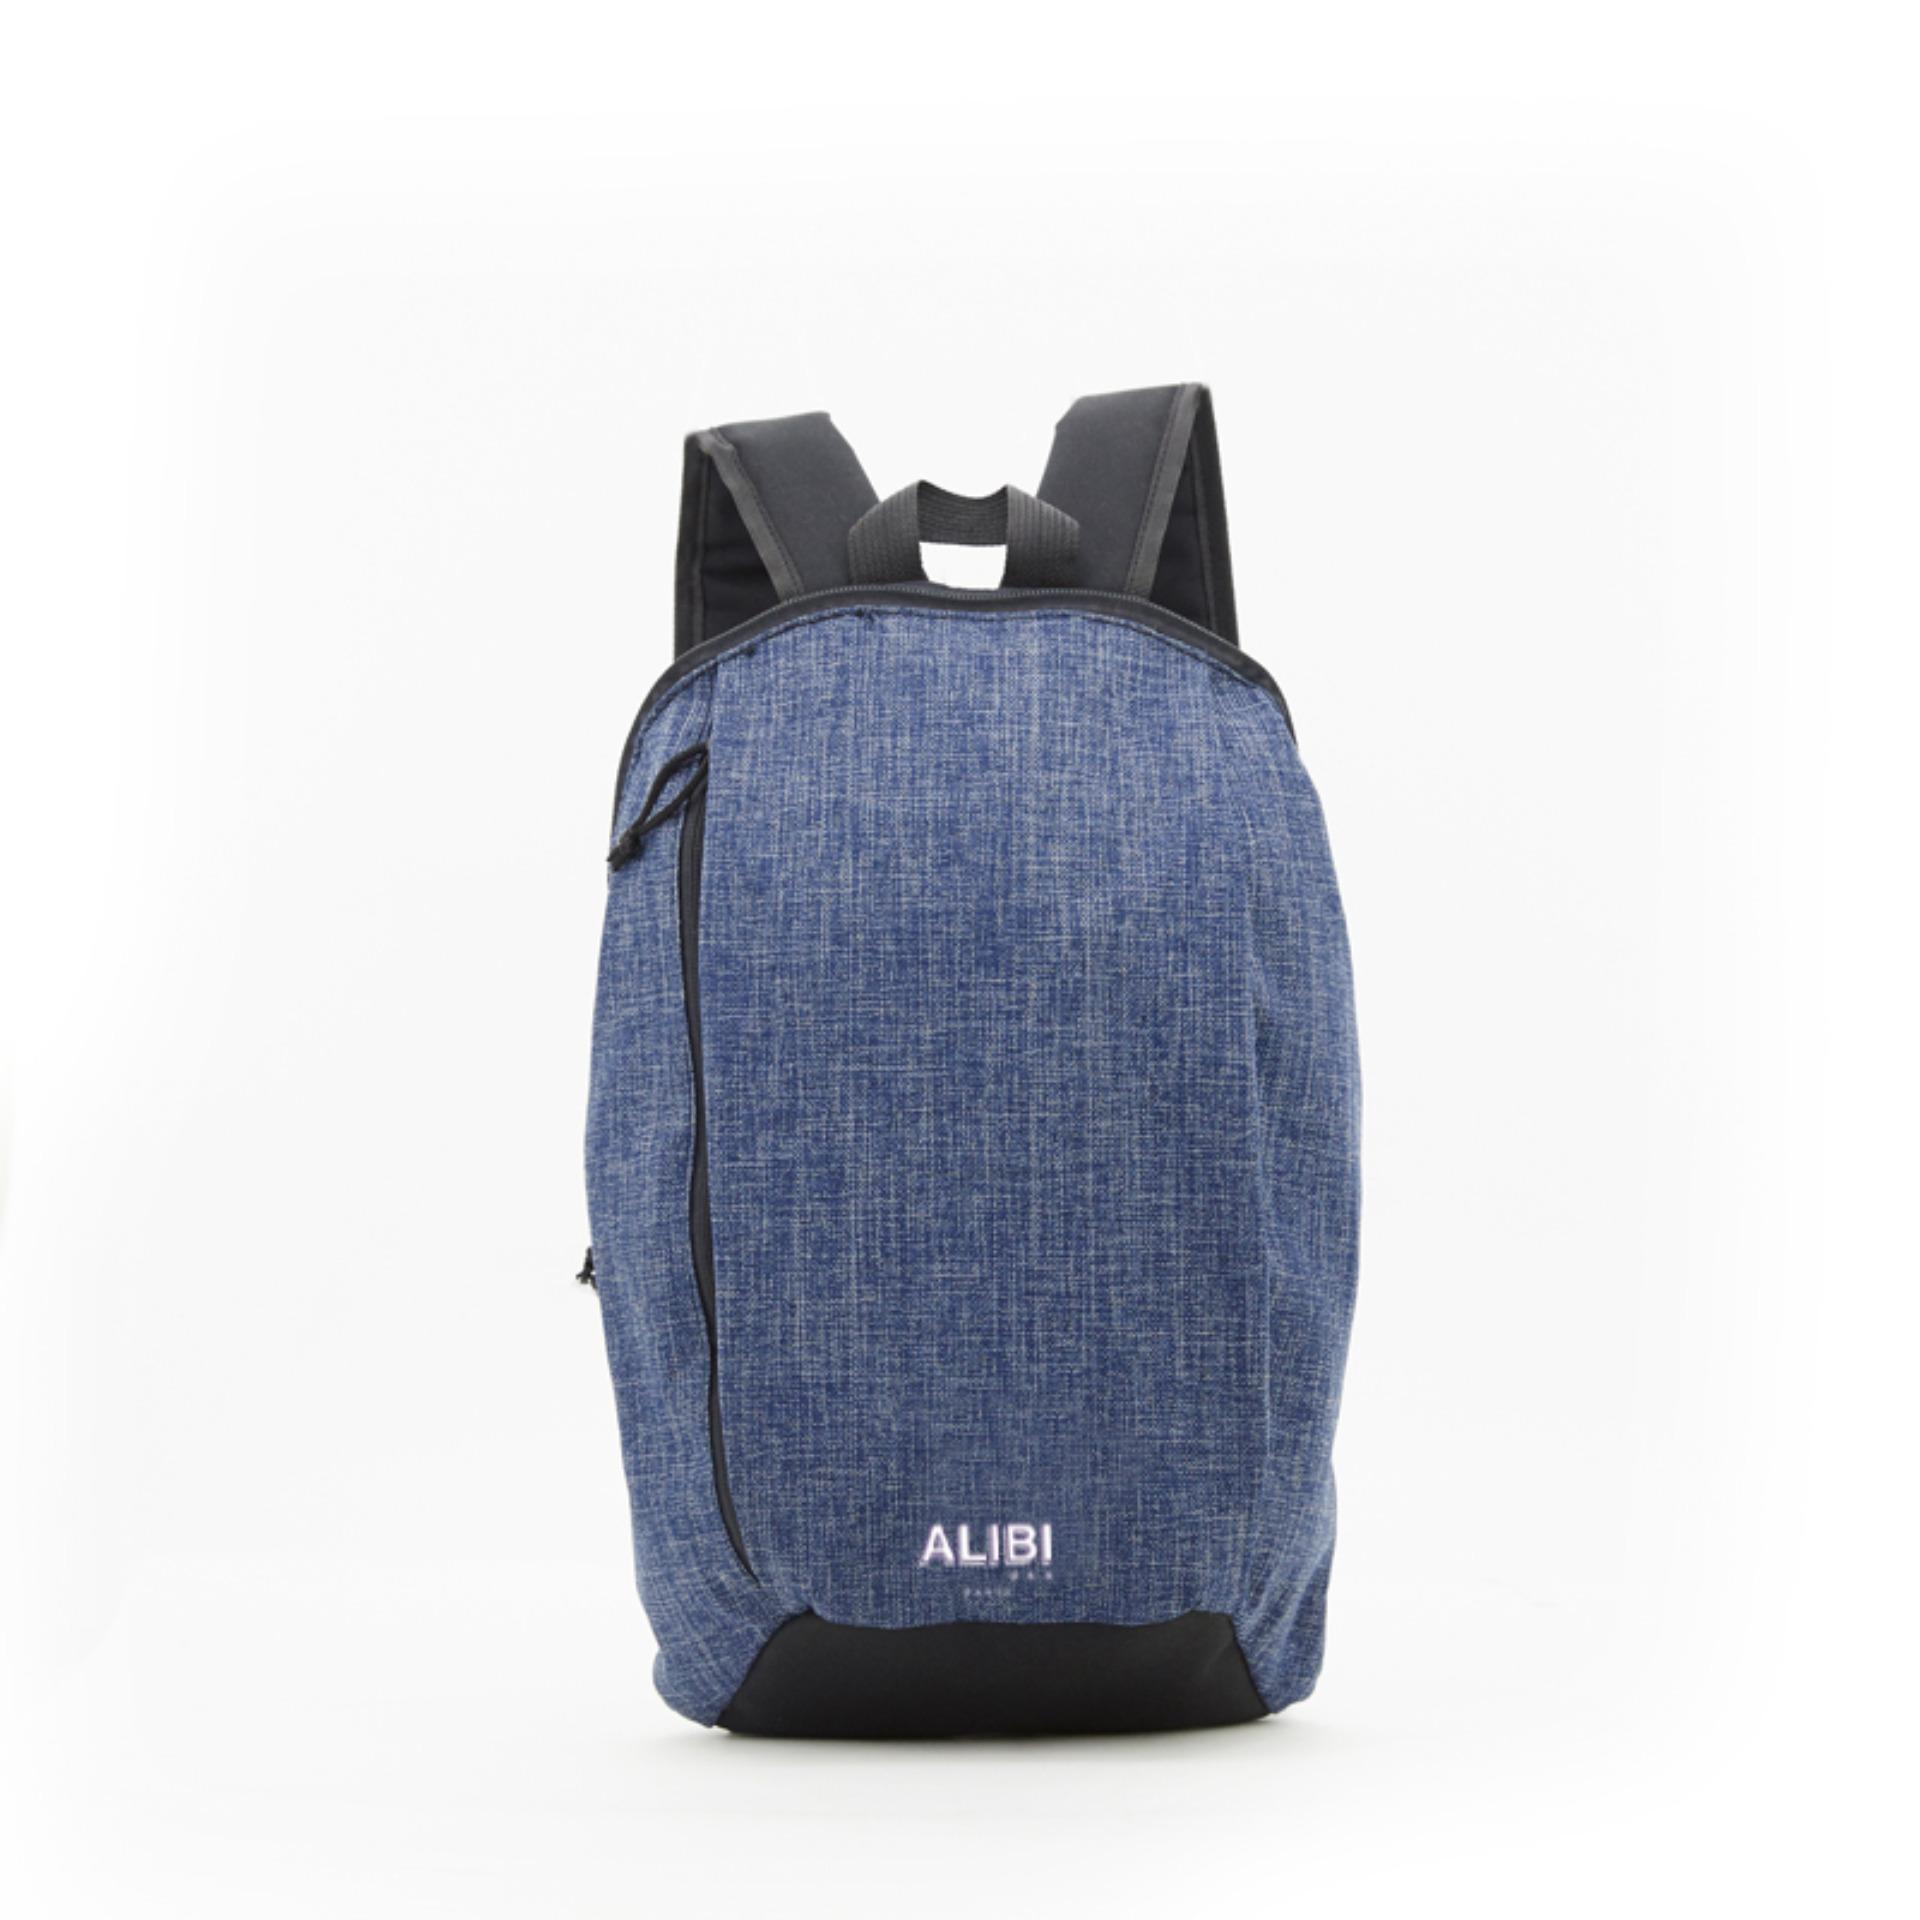 Jual Alibi Paris Alston Bag Grosir